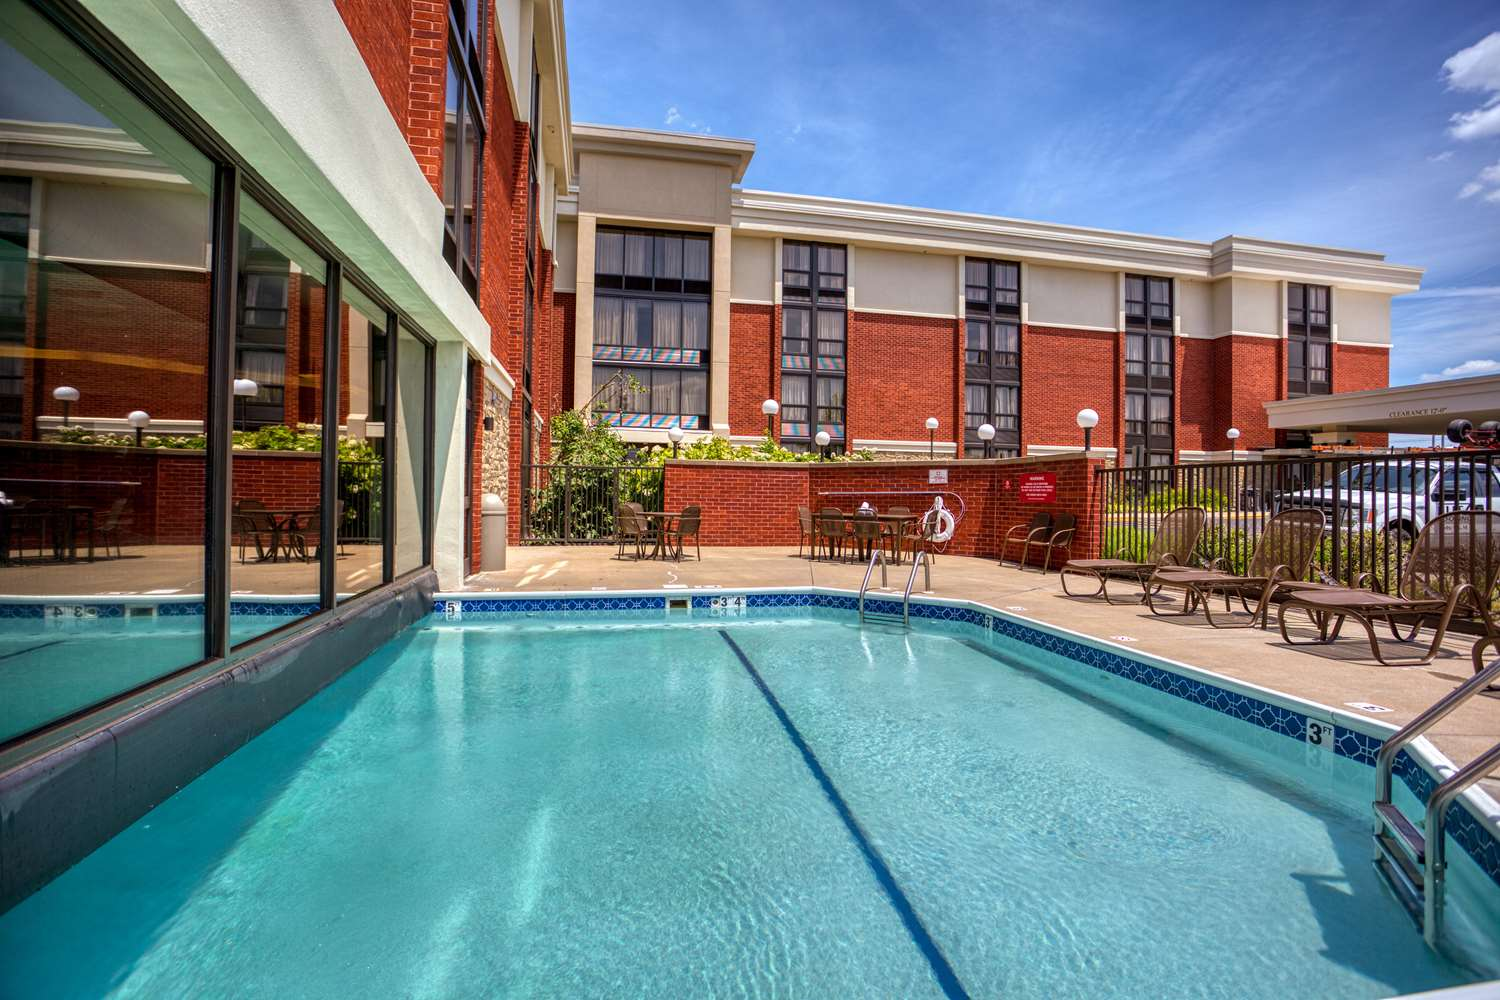 Pool - Drury Inn & Suites Fairview Heights